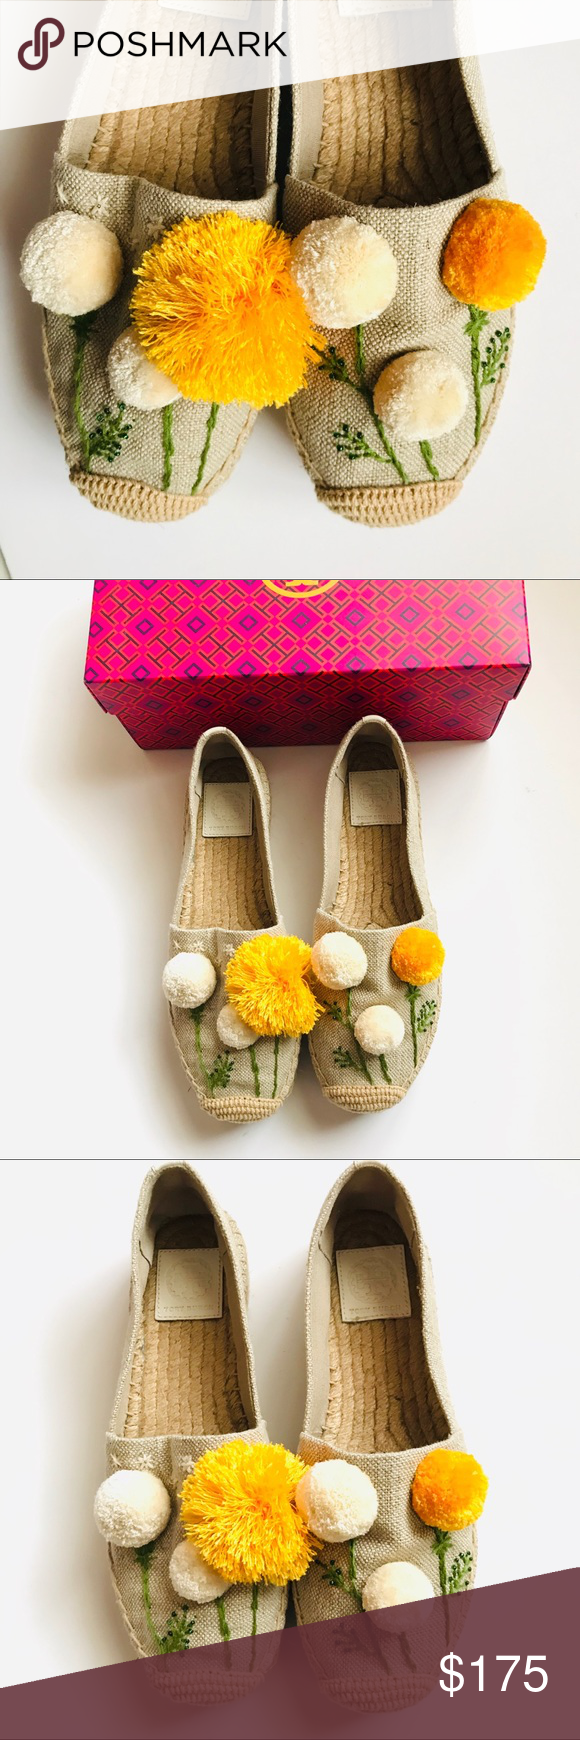 abc86d24a New Tory Burch Lily Pompom Platform Espadrille New. DETAILS & CARE Fluffy  pompoms give three-dimensional life to the whimsically embroidered  dandelions ...